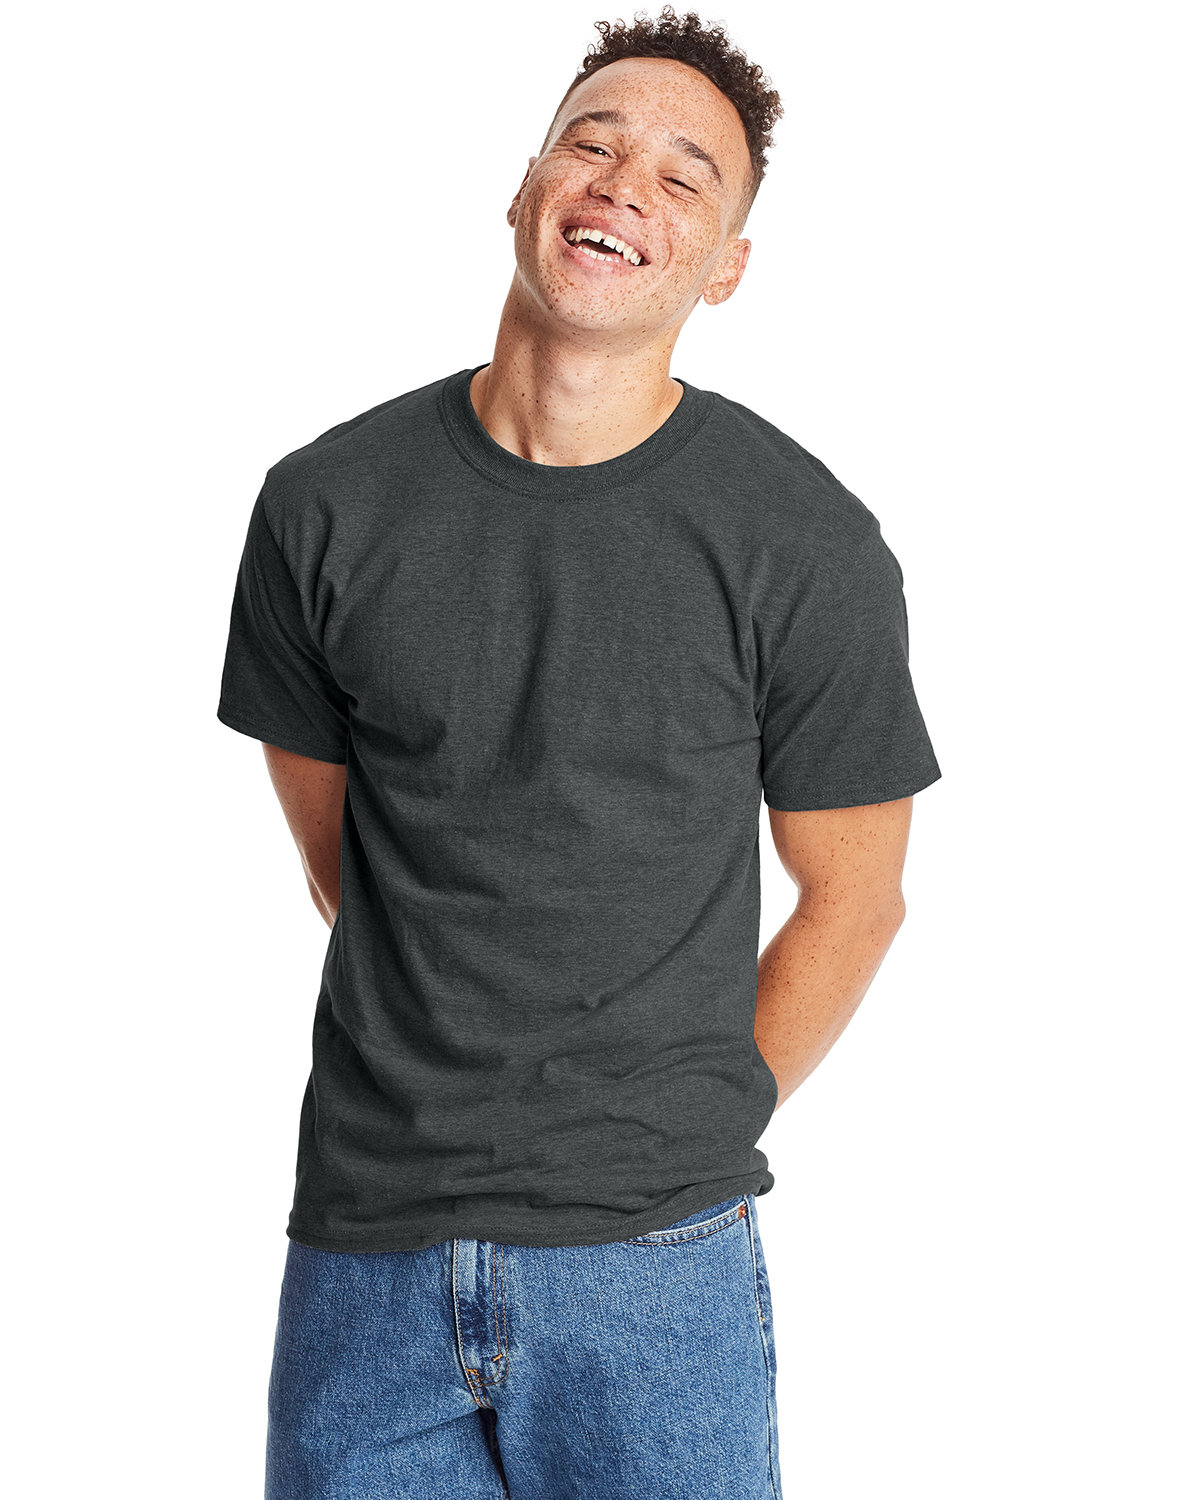 Hanes Unisex Beefy-T® T-Shirt CHARCOAL HEATHER